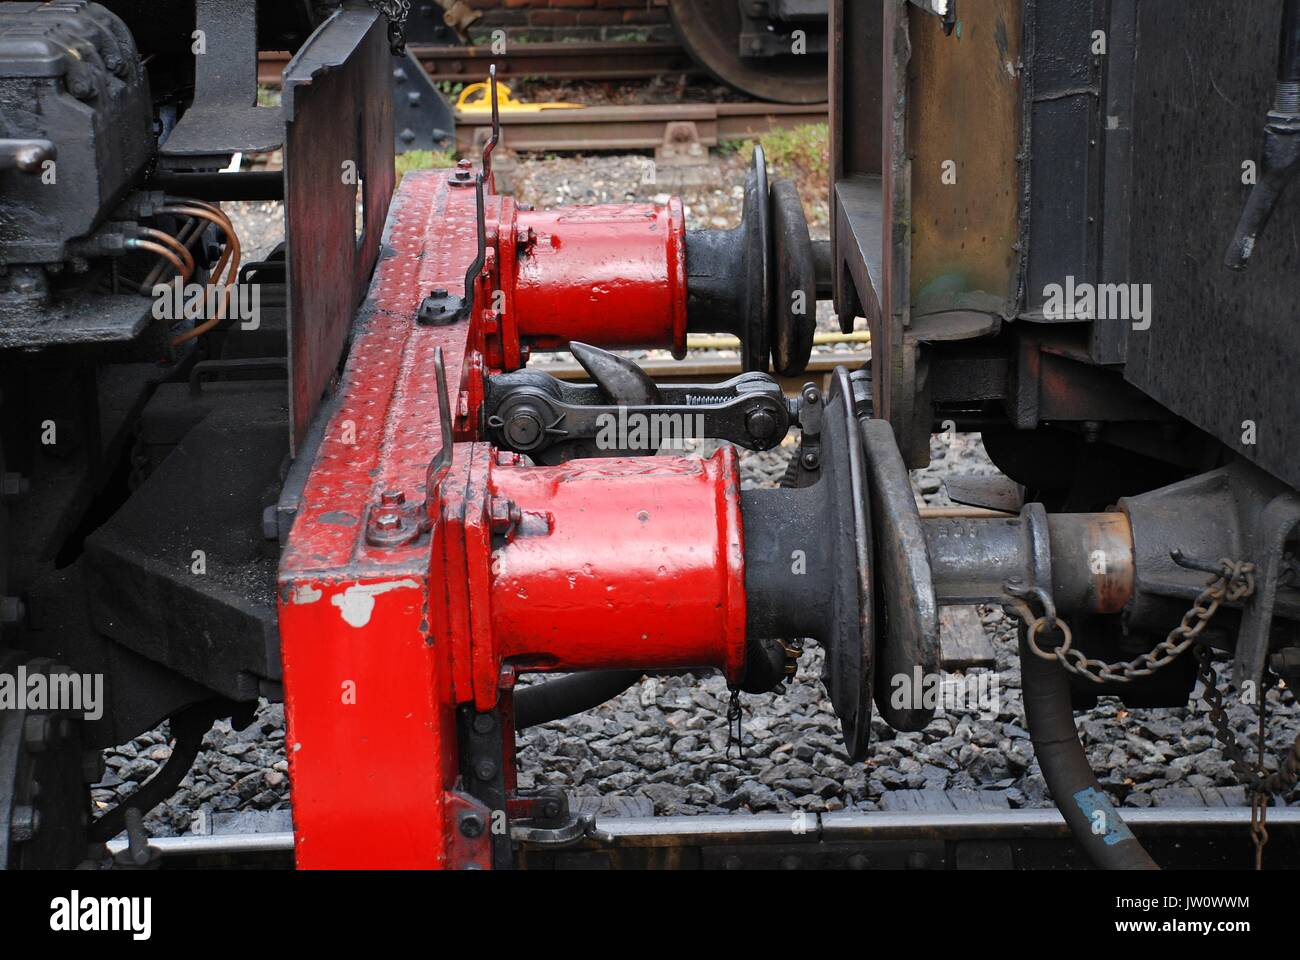 The buffers and couplings of Southern railway 0-6-0T USA class steam locomotive number 65 at Tenterden station on the Kent and East Sussex Railway. - Stock Image